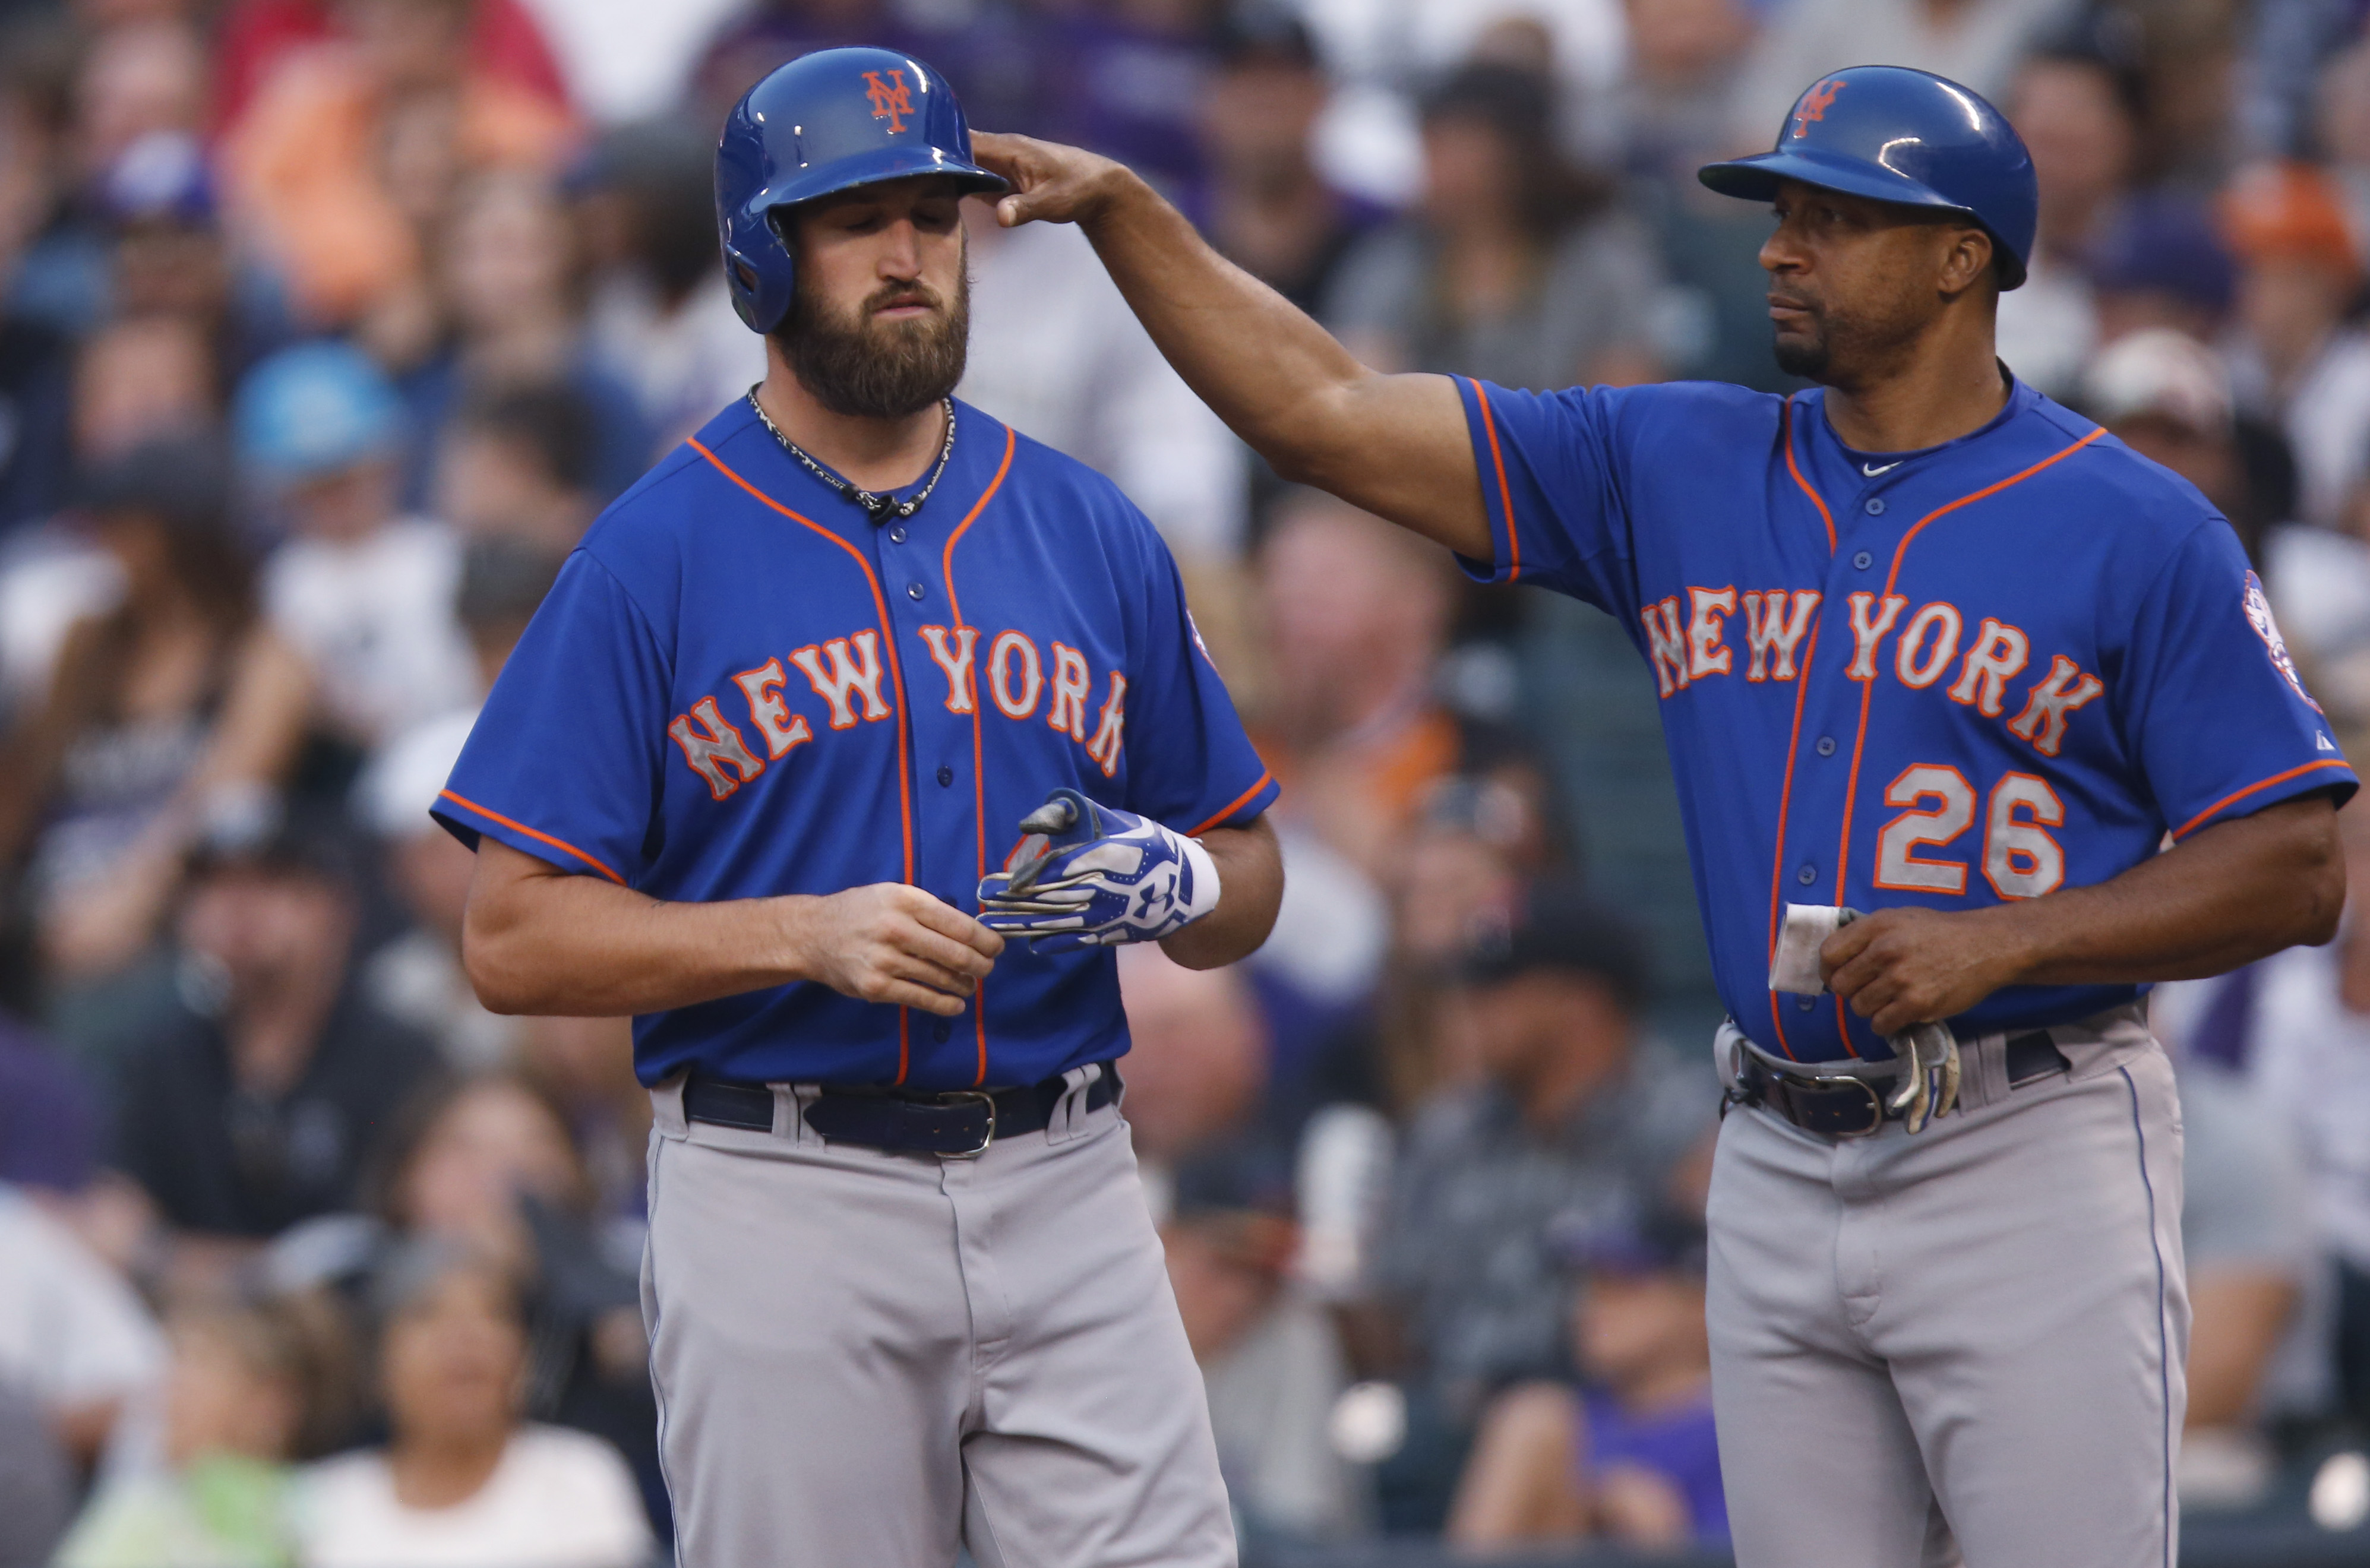 New York Mets' Jonathon Niese, left, is tapped on the helmet by first base coach Tom Goodwin after hitting a single with the bases loaded to drive in two runs off Colorado Rockies starting pitcher Chris Rusin in the third inning of a baseball game Saturda